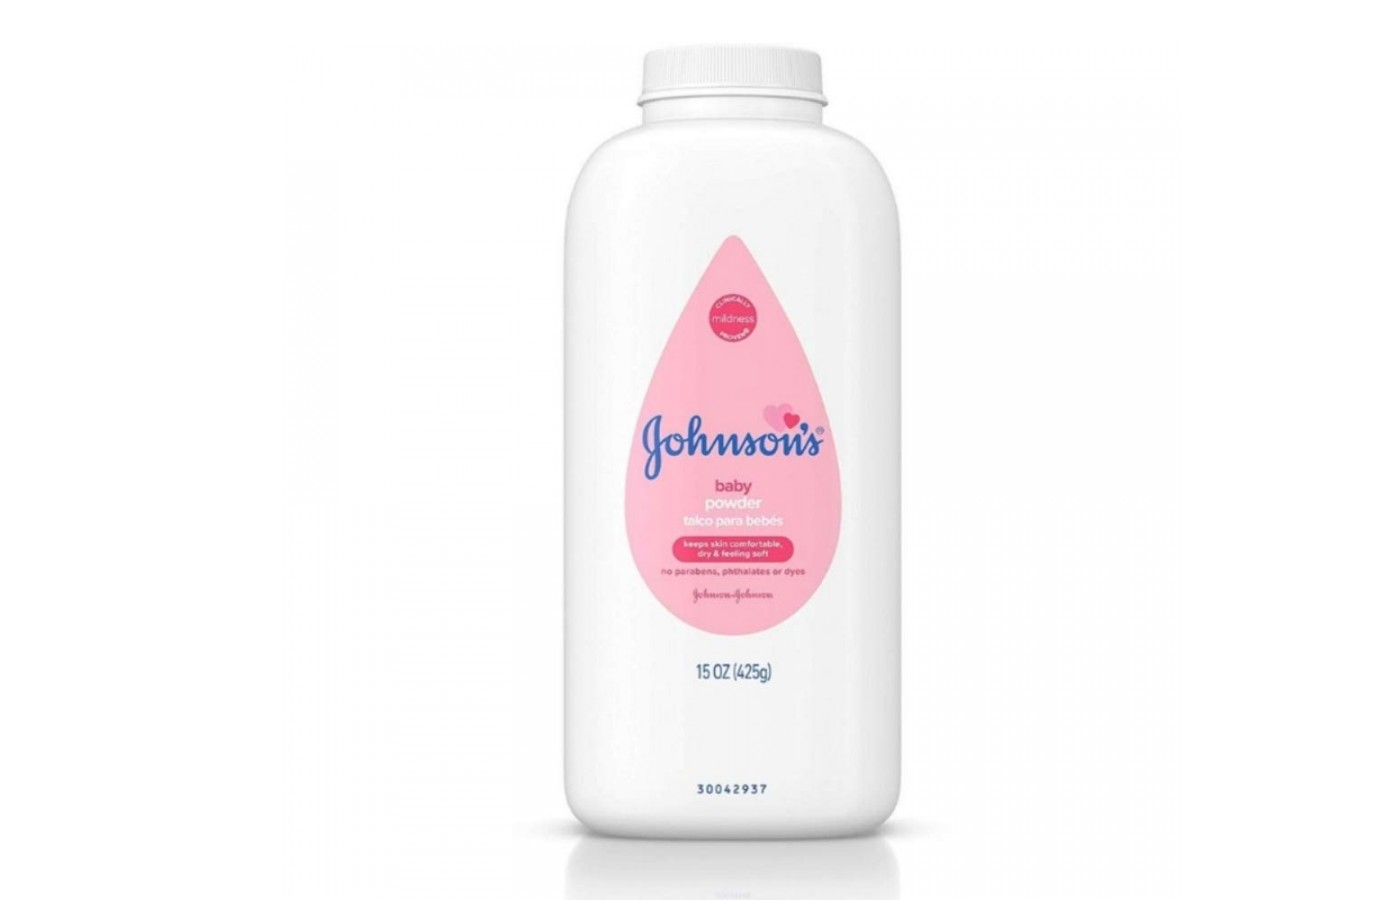 Johnson's Baby Powder front